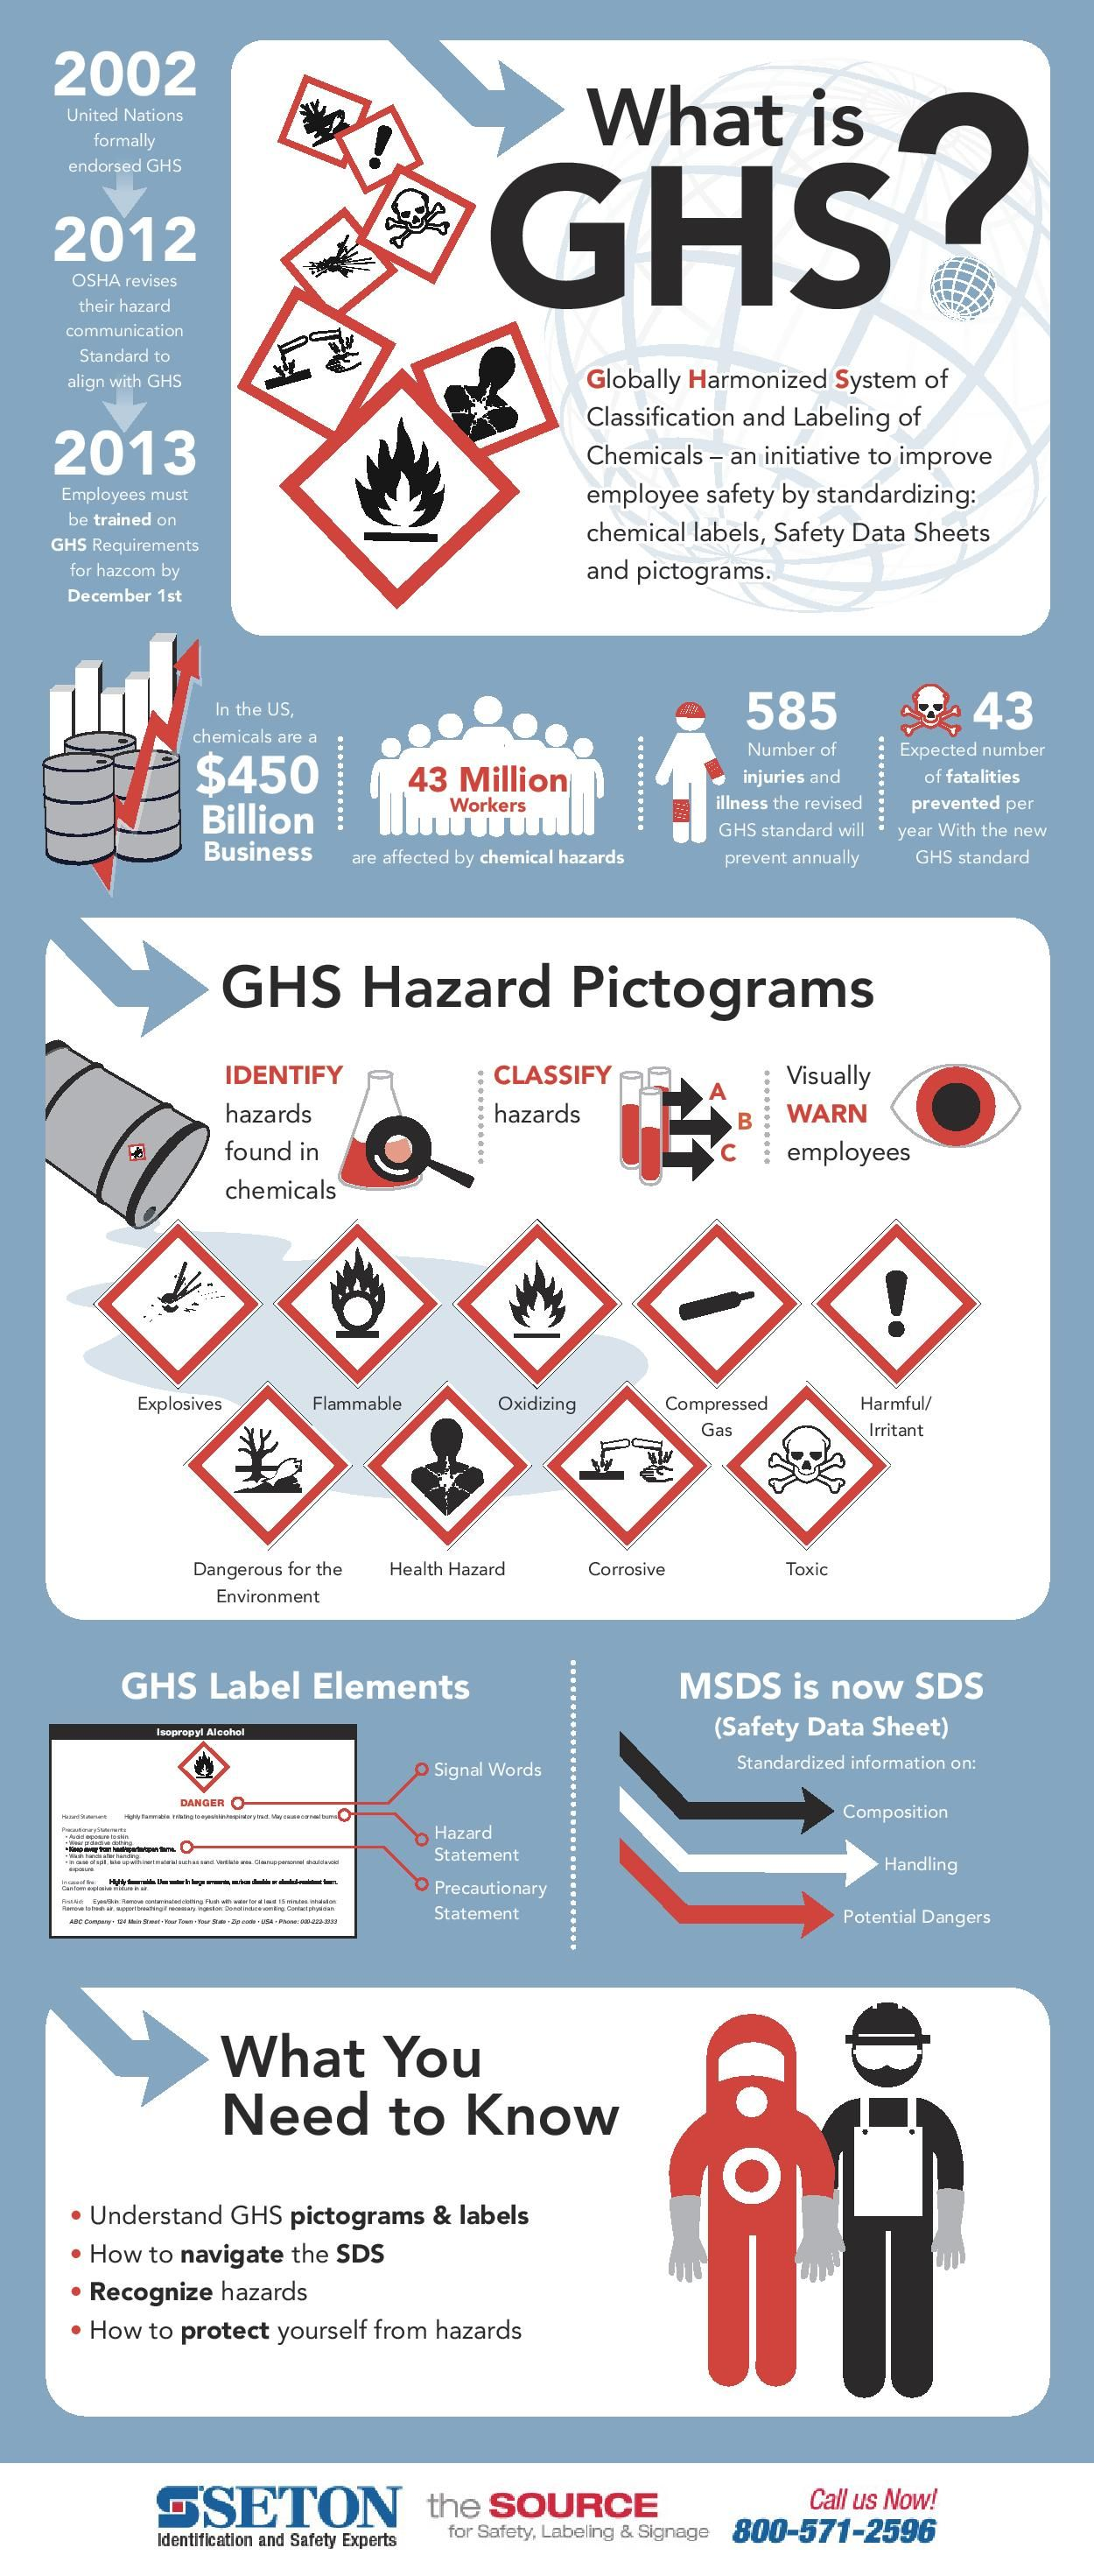 Globally Harmonized System Of Classification And Labeling Of Chemicals